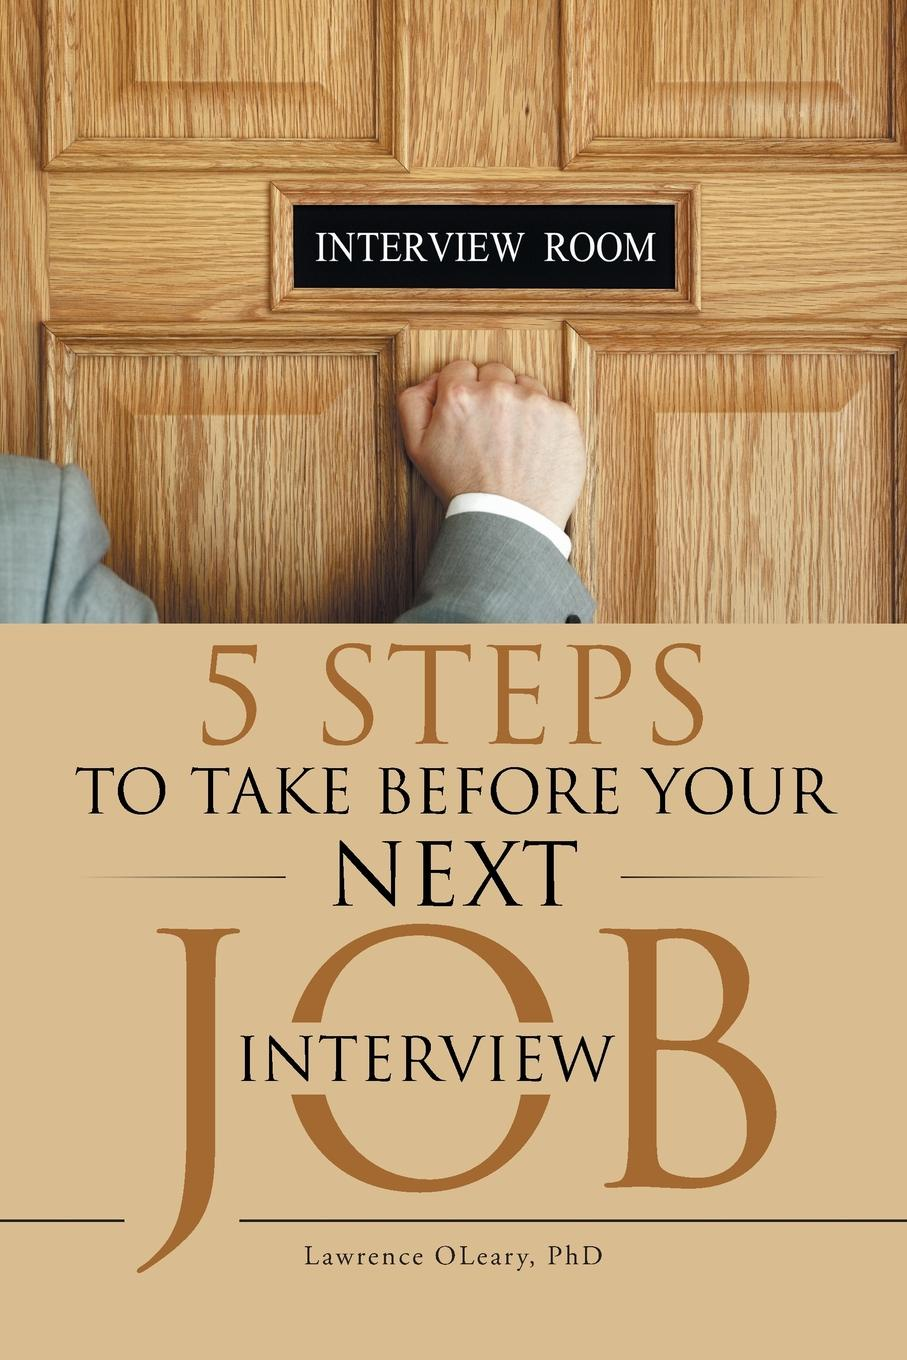 Ph.D. Lawrence OLeary 5 Steps to Take before Your Next Job Interview